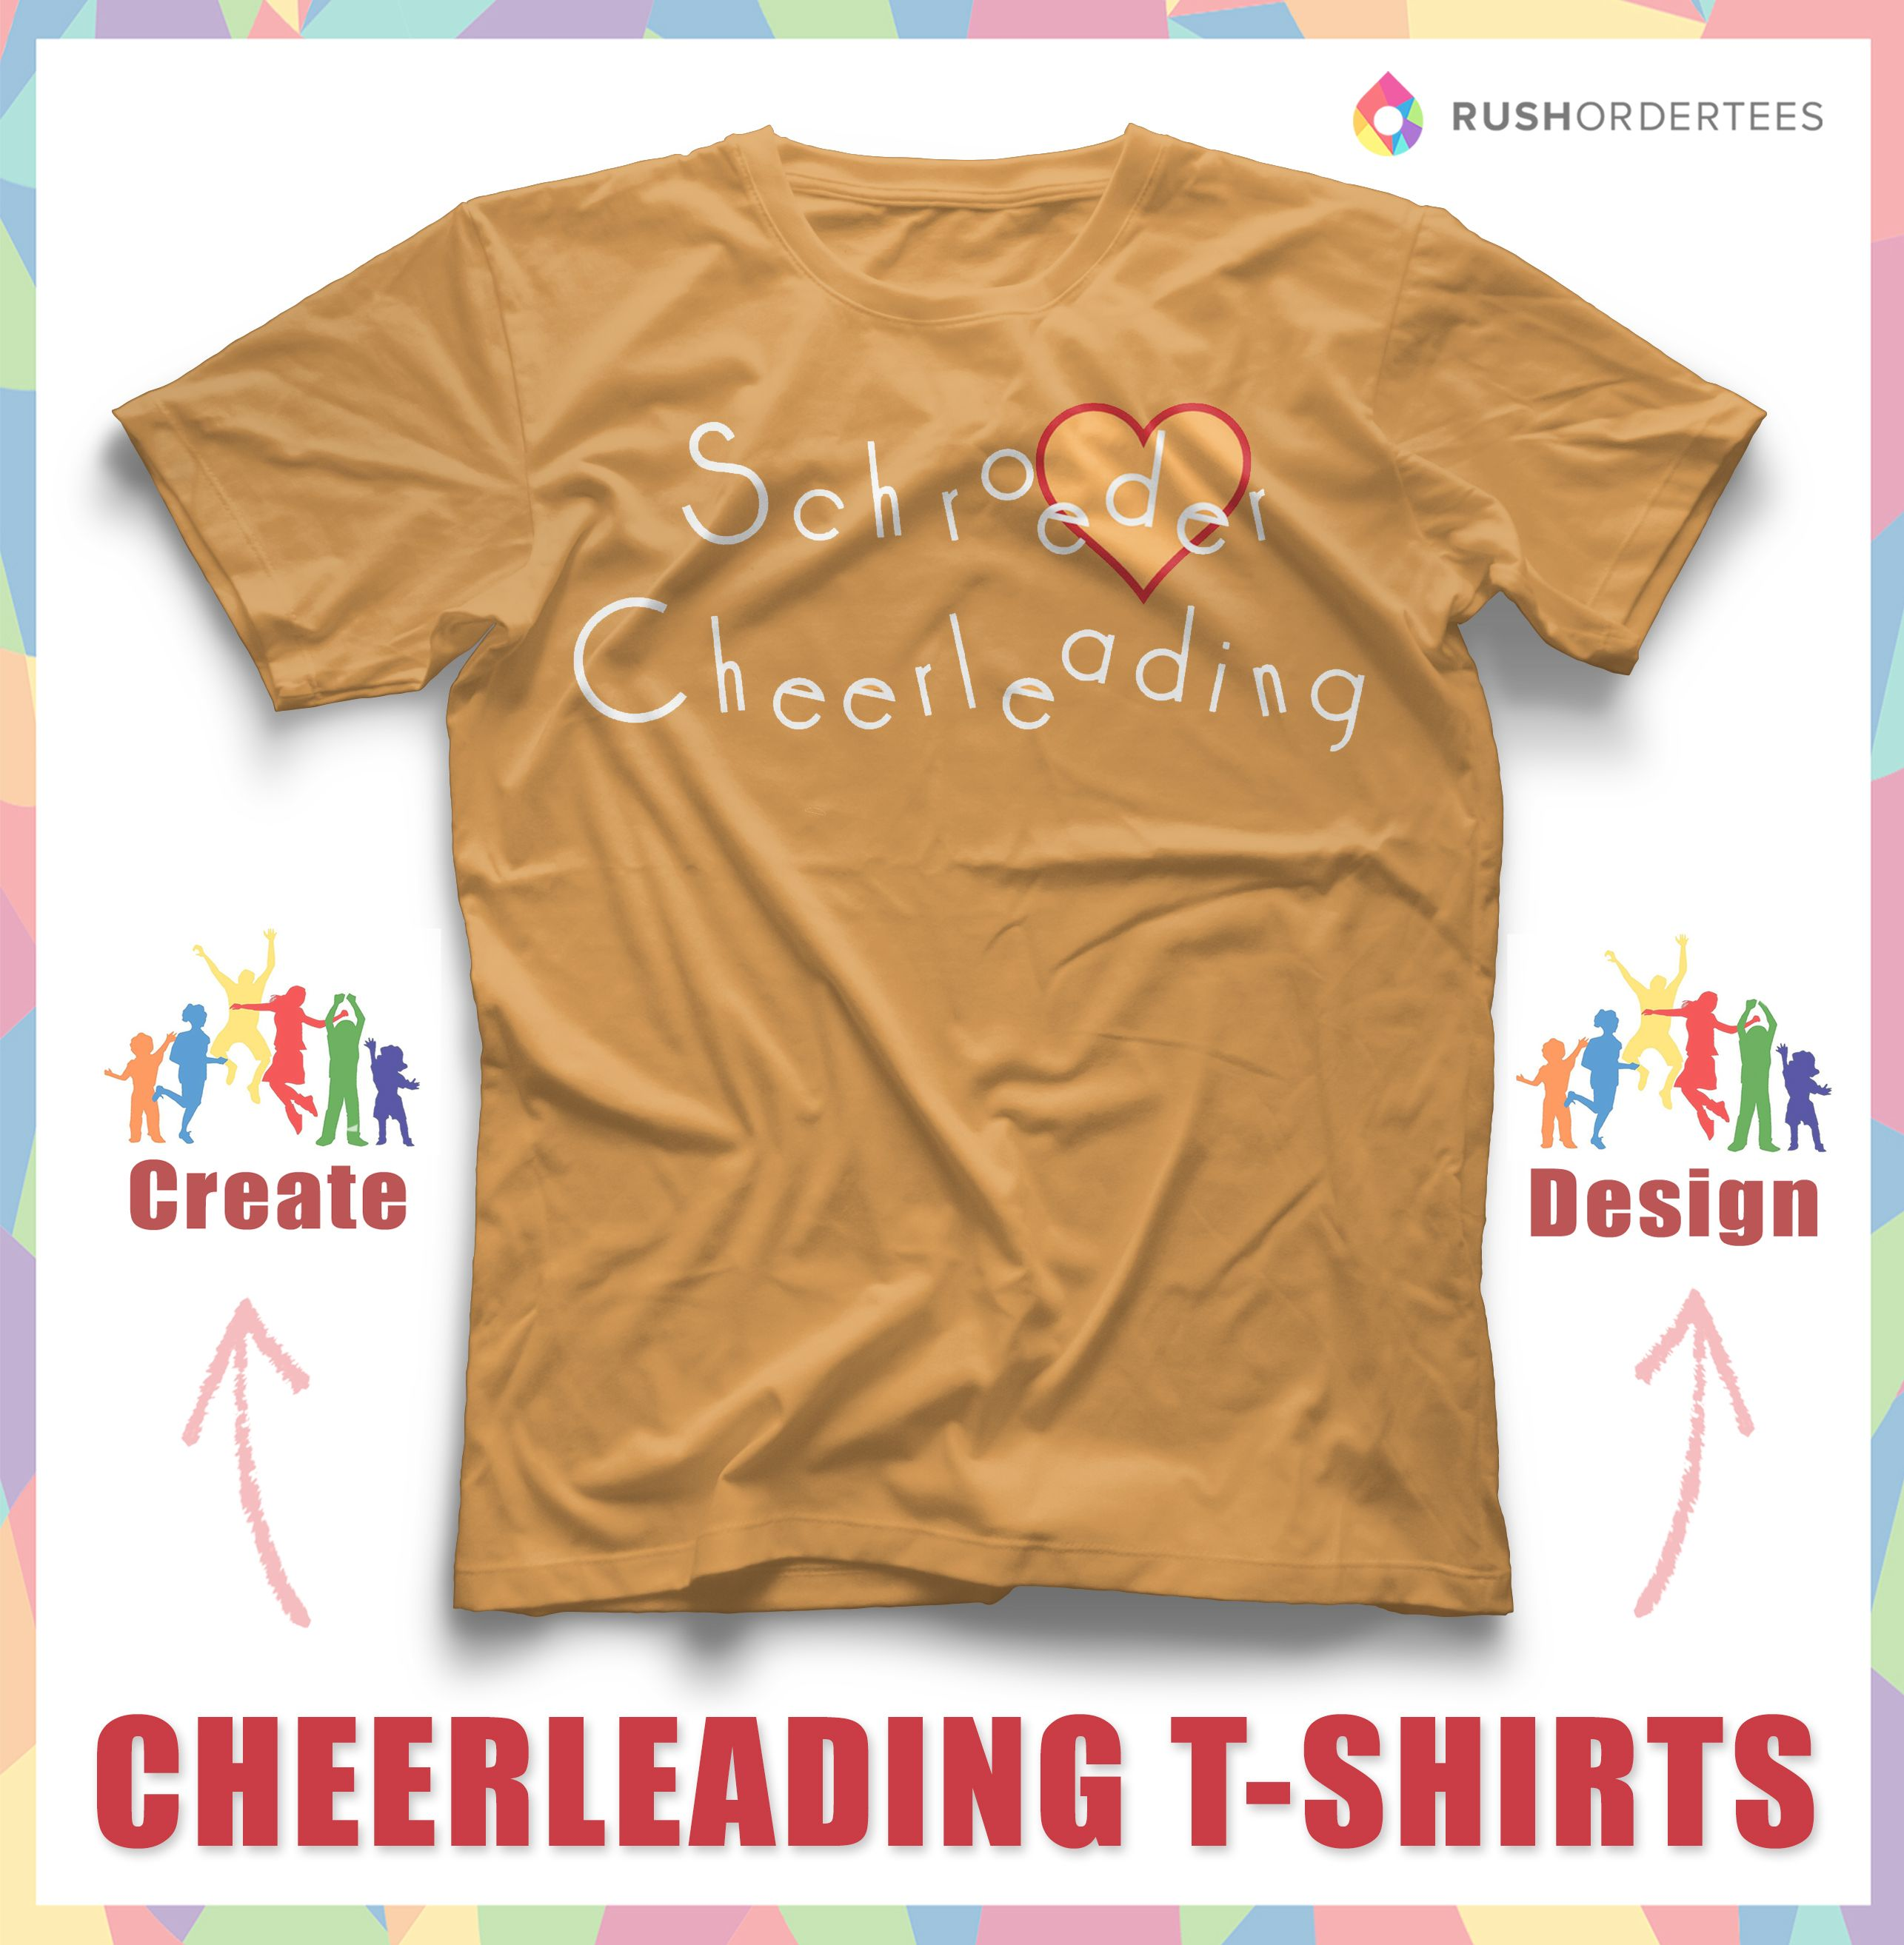 Cheerleading Custom T Shirt Design Idea! Create A Cheerleading Shirt For  Your Next Event